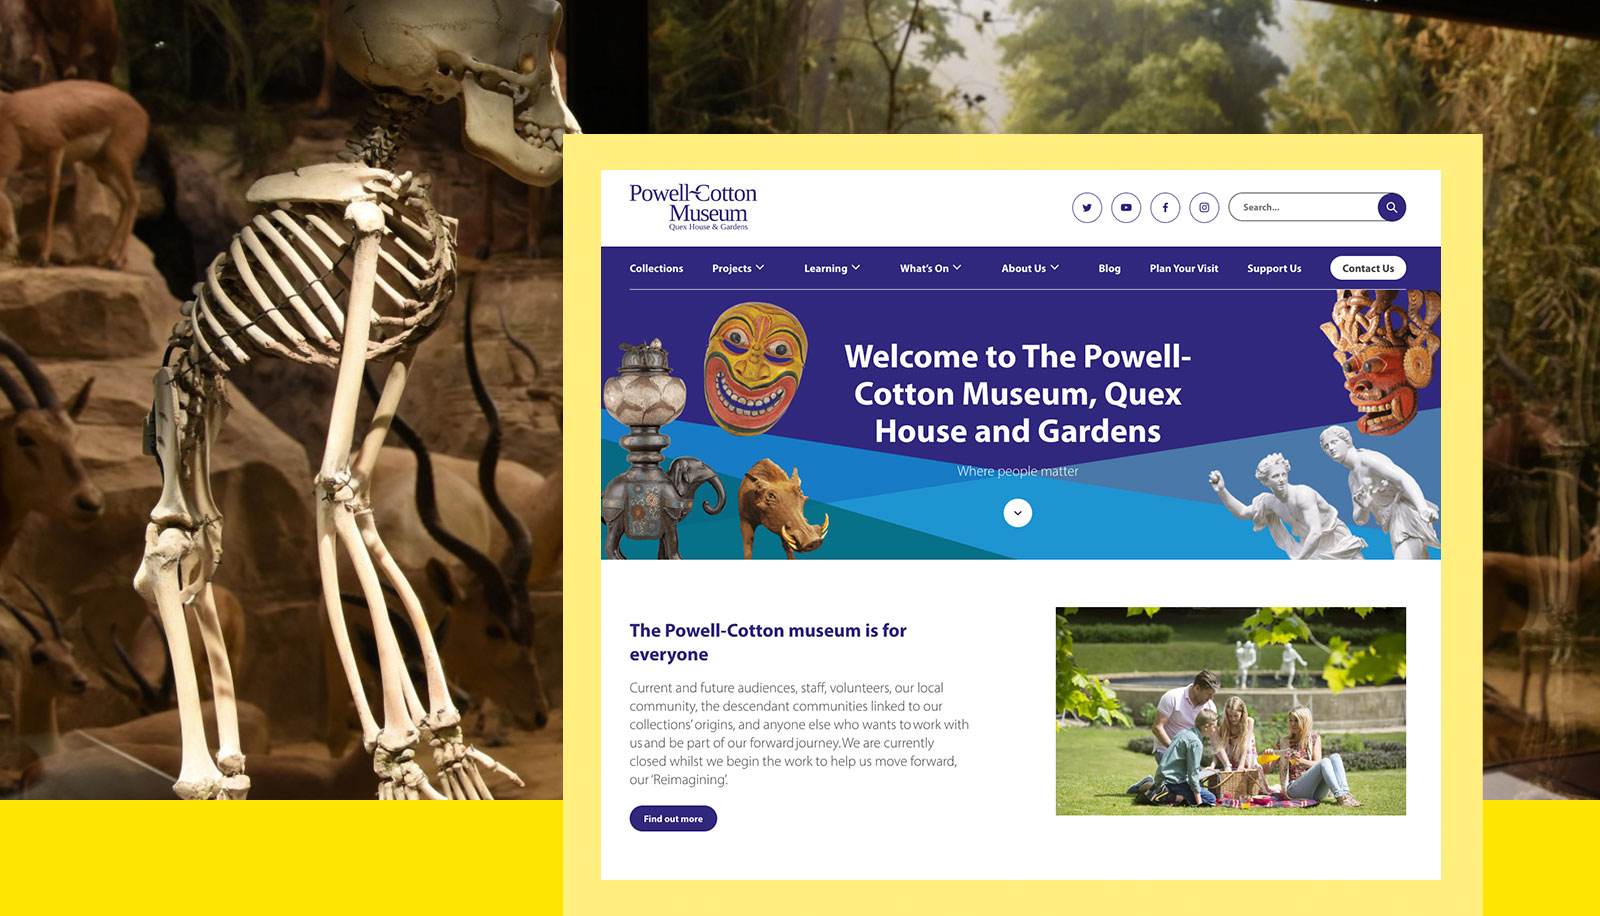 Screenshot of the Powell-Cotton Museum website overlaid on a photo of an exhibition of animals at the museum.